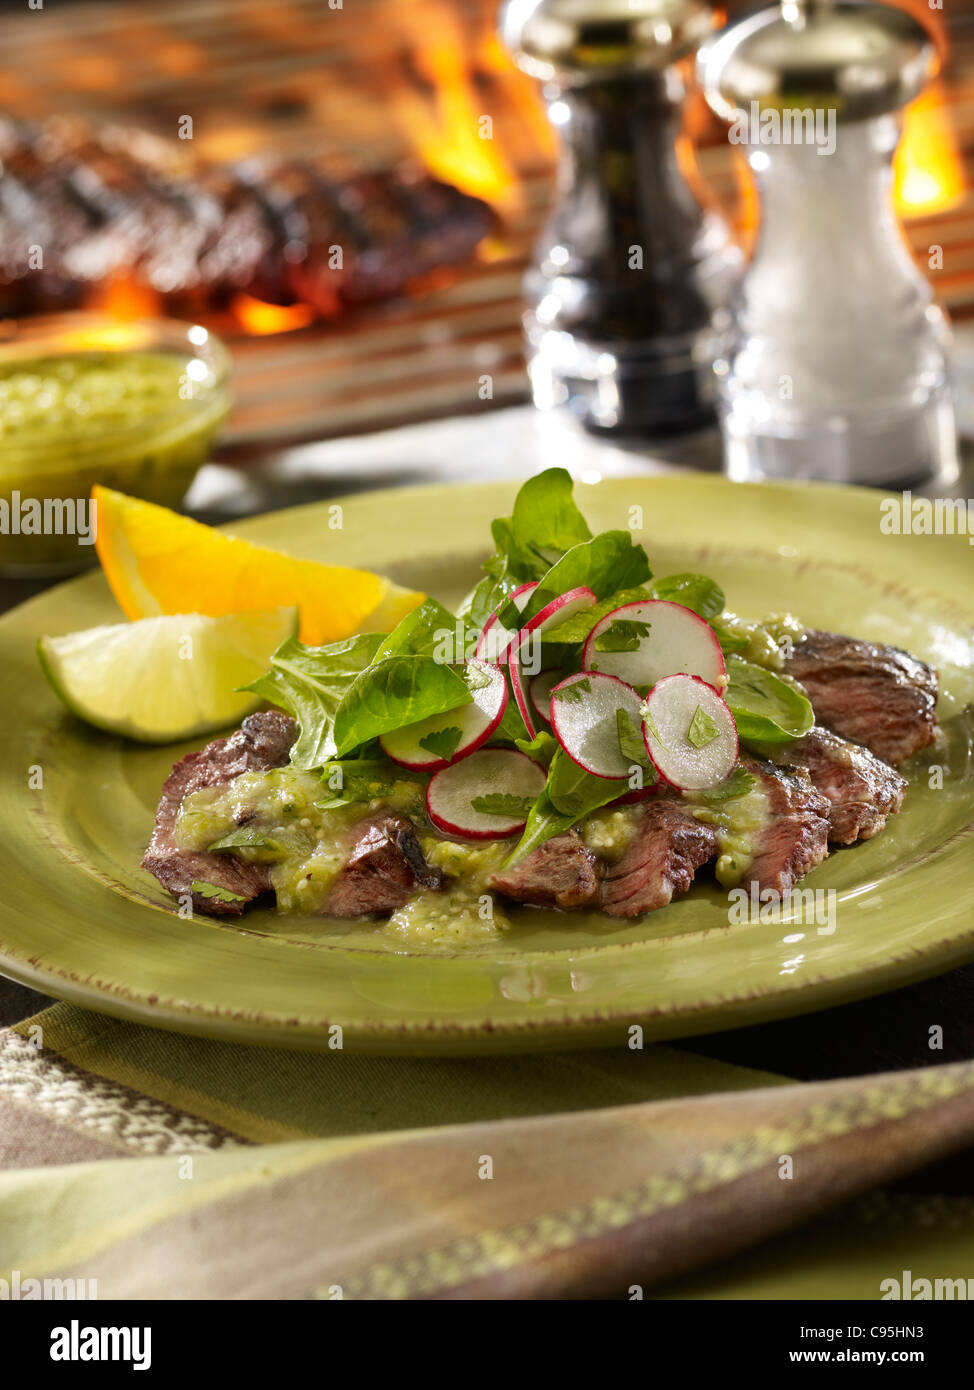 Grilled skirt steak salad with a barbecue flame - Stock Image